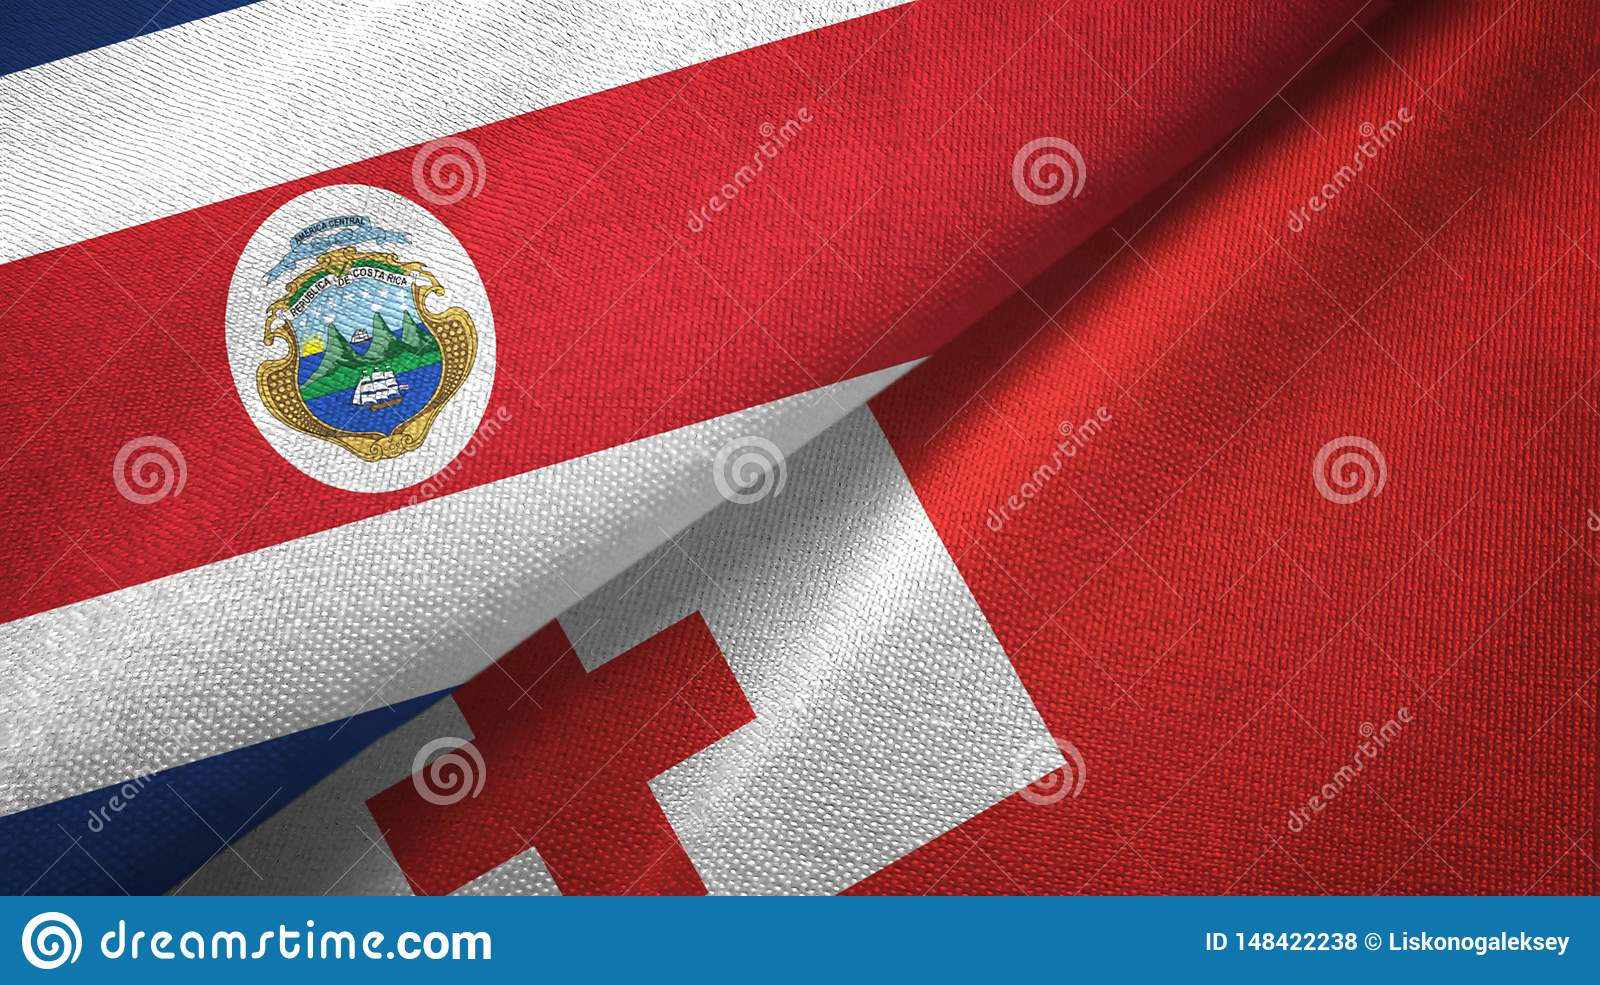 Costa Rica and Tonga two flags textile cloth, fabric texture